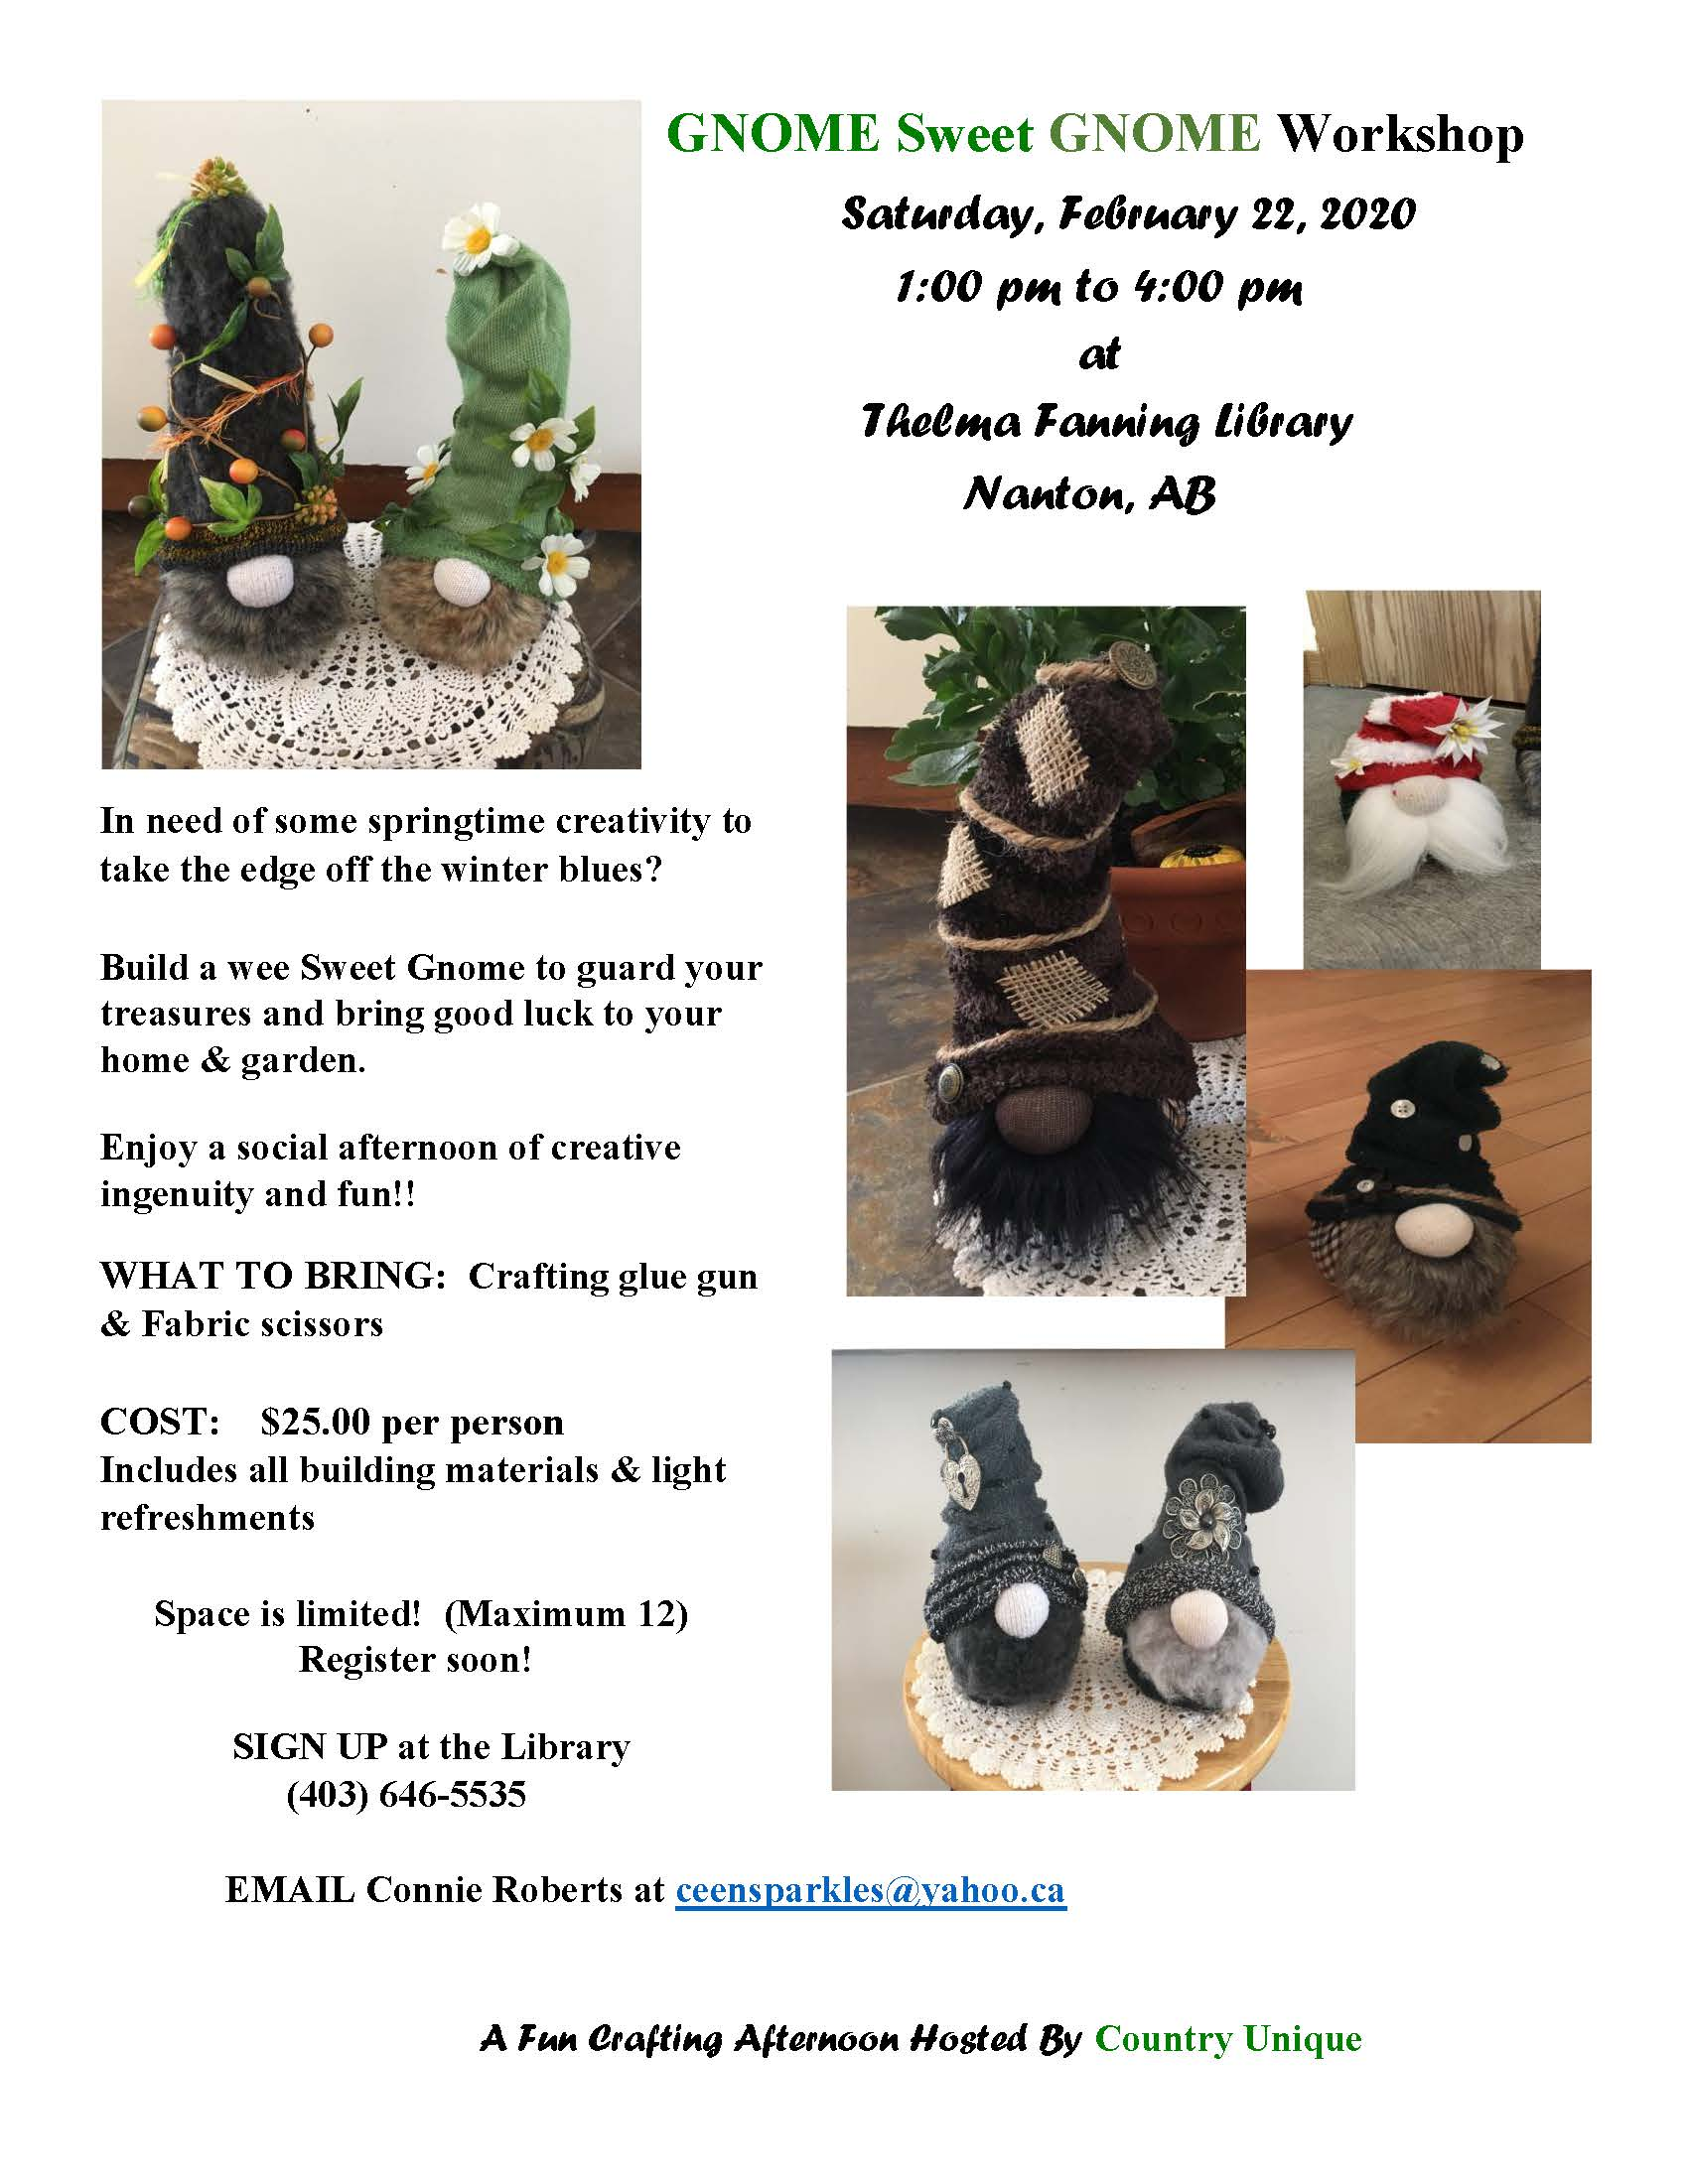 The library is hosting a gnome-making workshop on Saturday, February 22, from 1:00 to 4:00 pm.  Bring a crafting gun and fabric scissors.  Cost is $25 per person for materials and light refreshments.